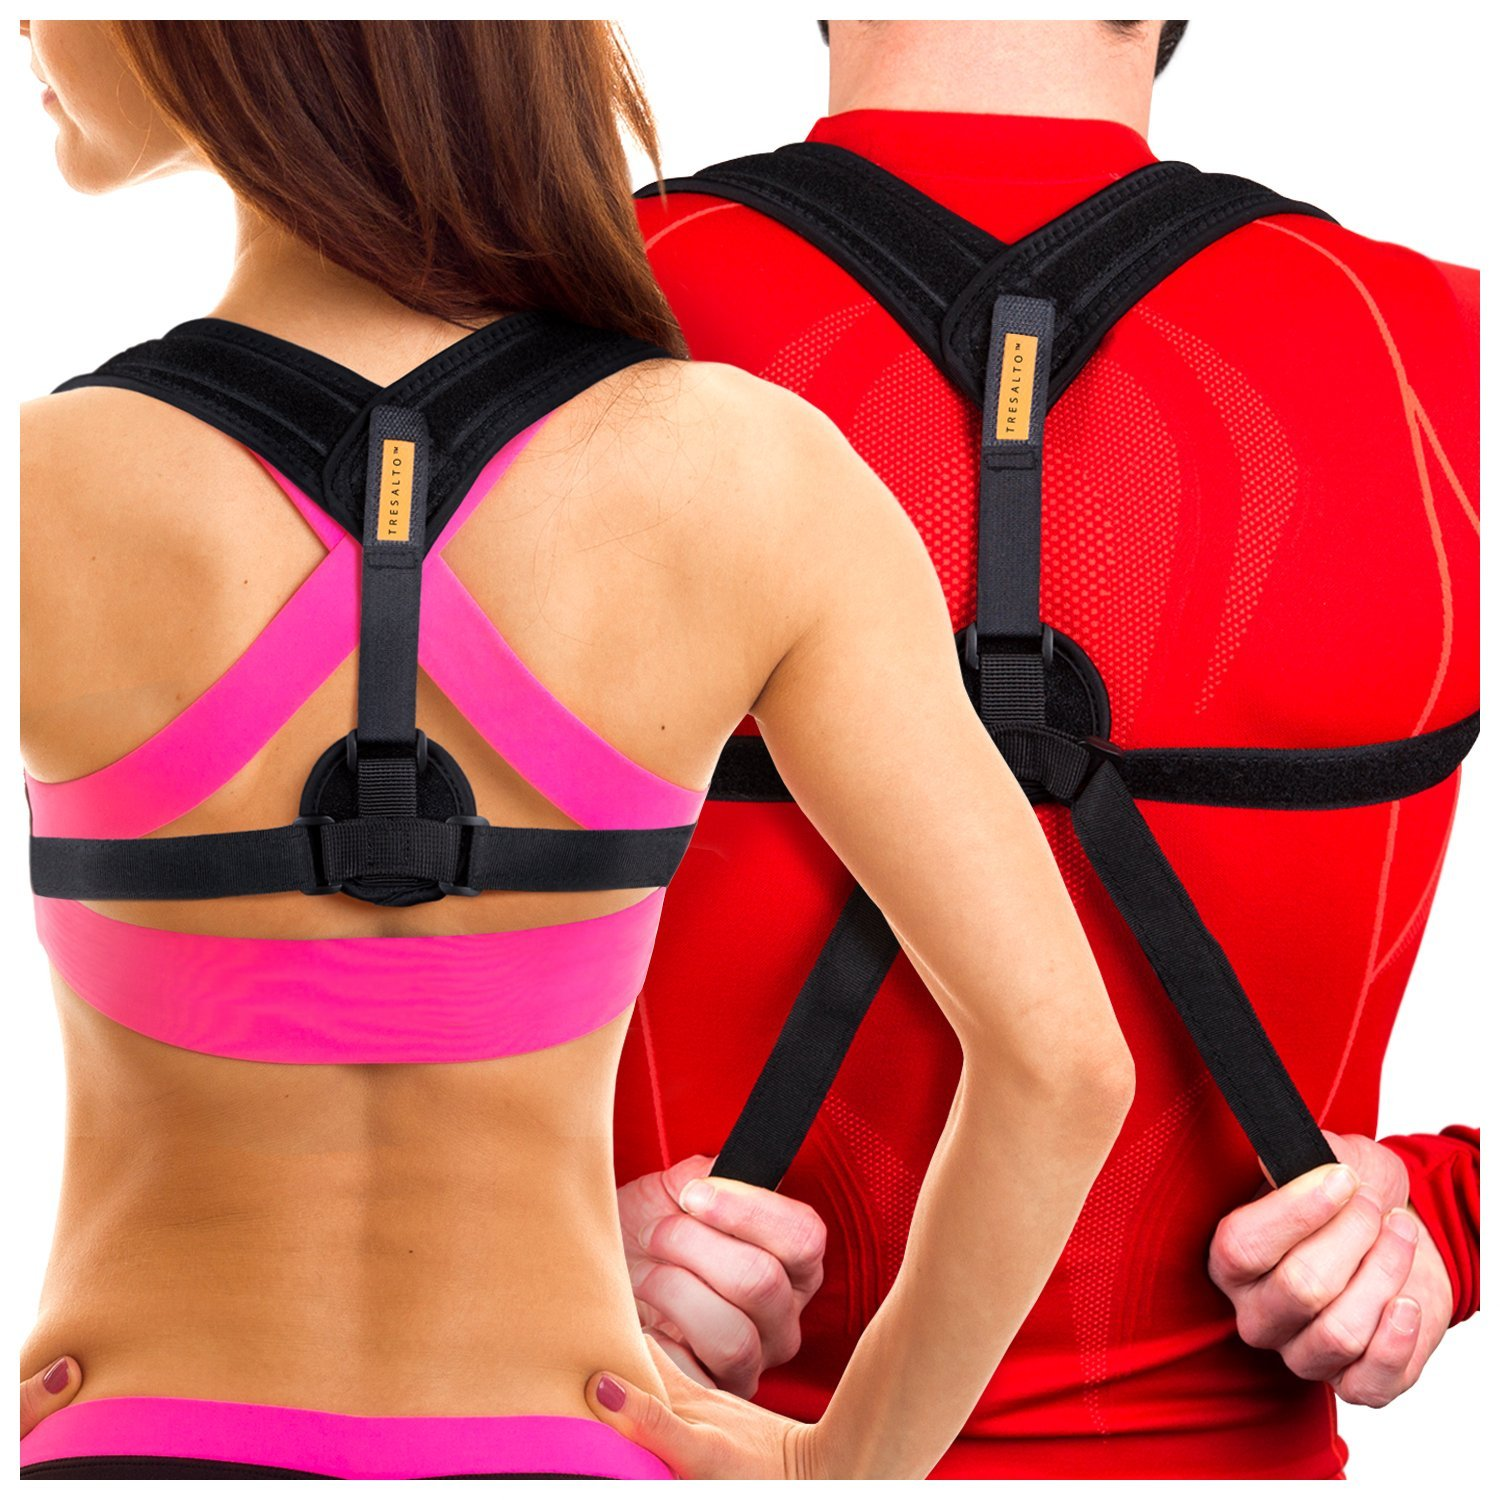 Tresalto Back Posture Corrector For Women & Men - Effective and Comfortable Orthopedic Primate Clavicle Support Brace for Slouching & Hunching with Descret Design